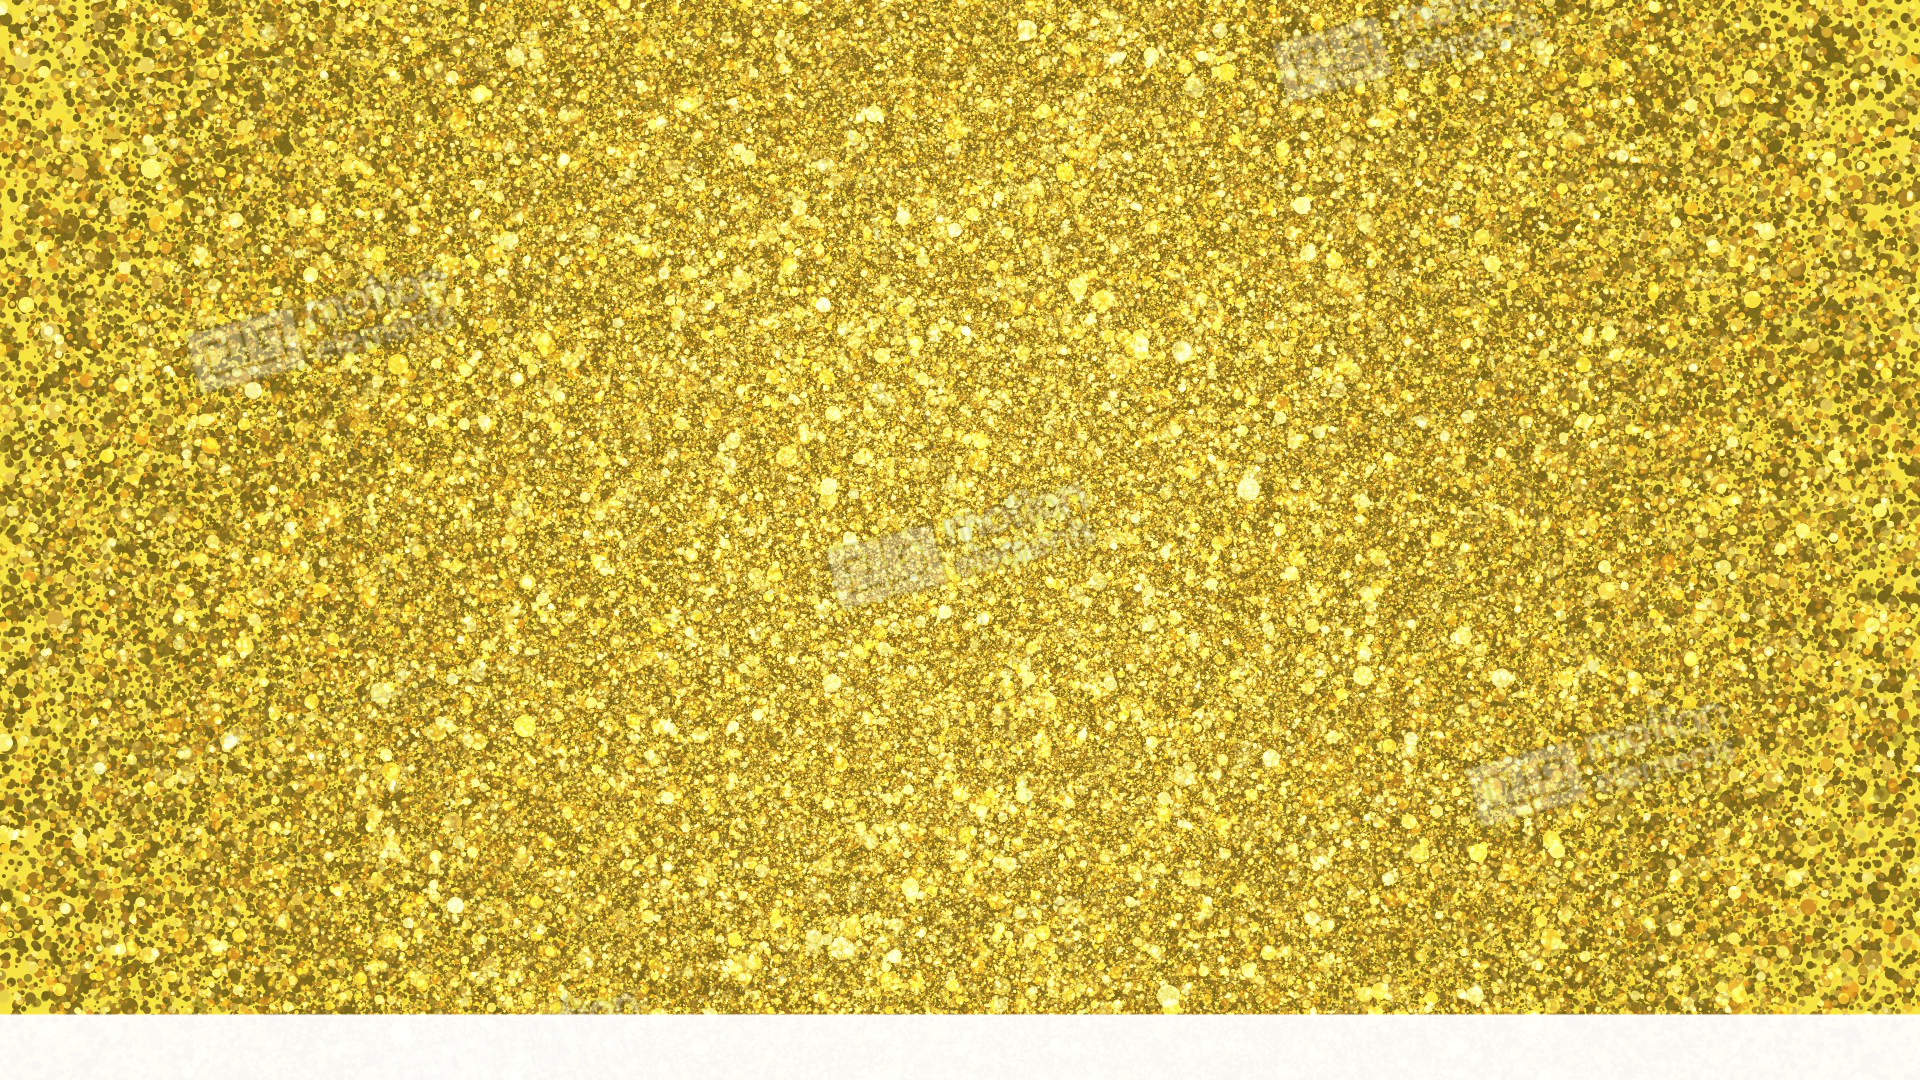 golden glitter background loop stock animation 11758517 yes clip art clip art yes clip art stamp